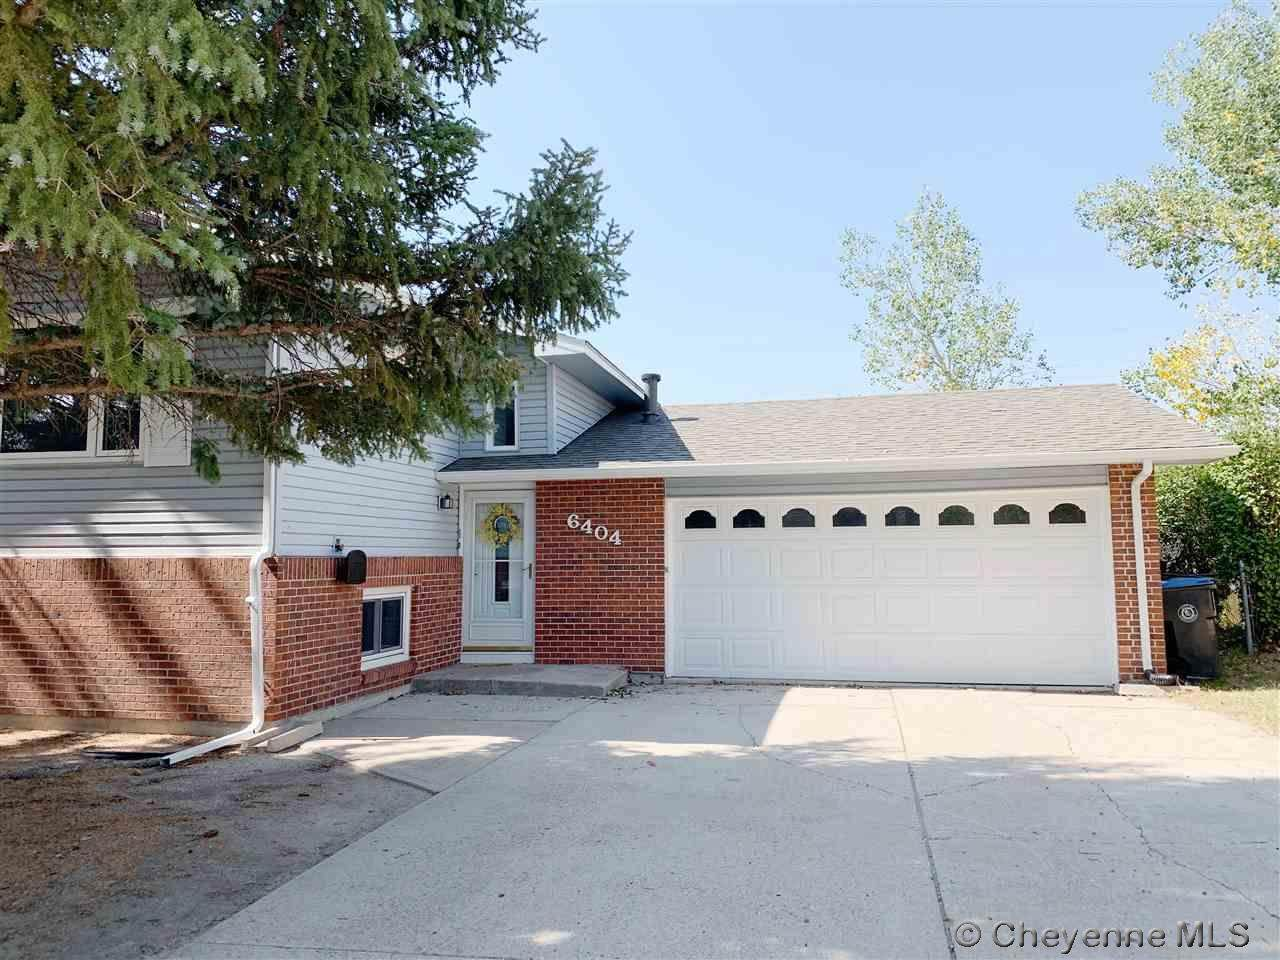 6404 Kevin Ave - Photo 1